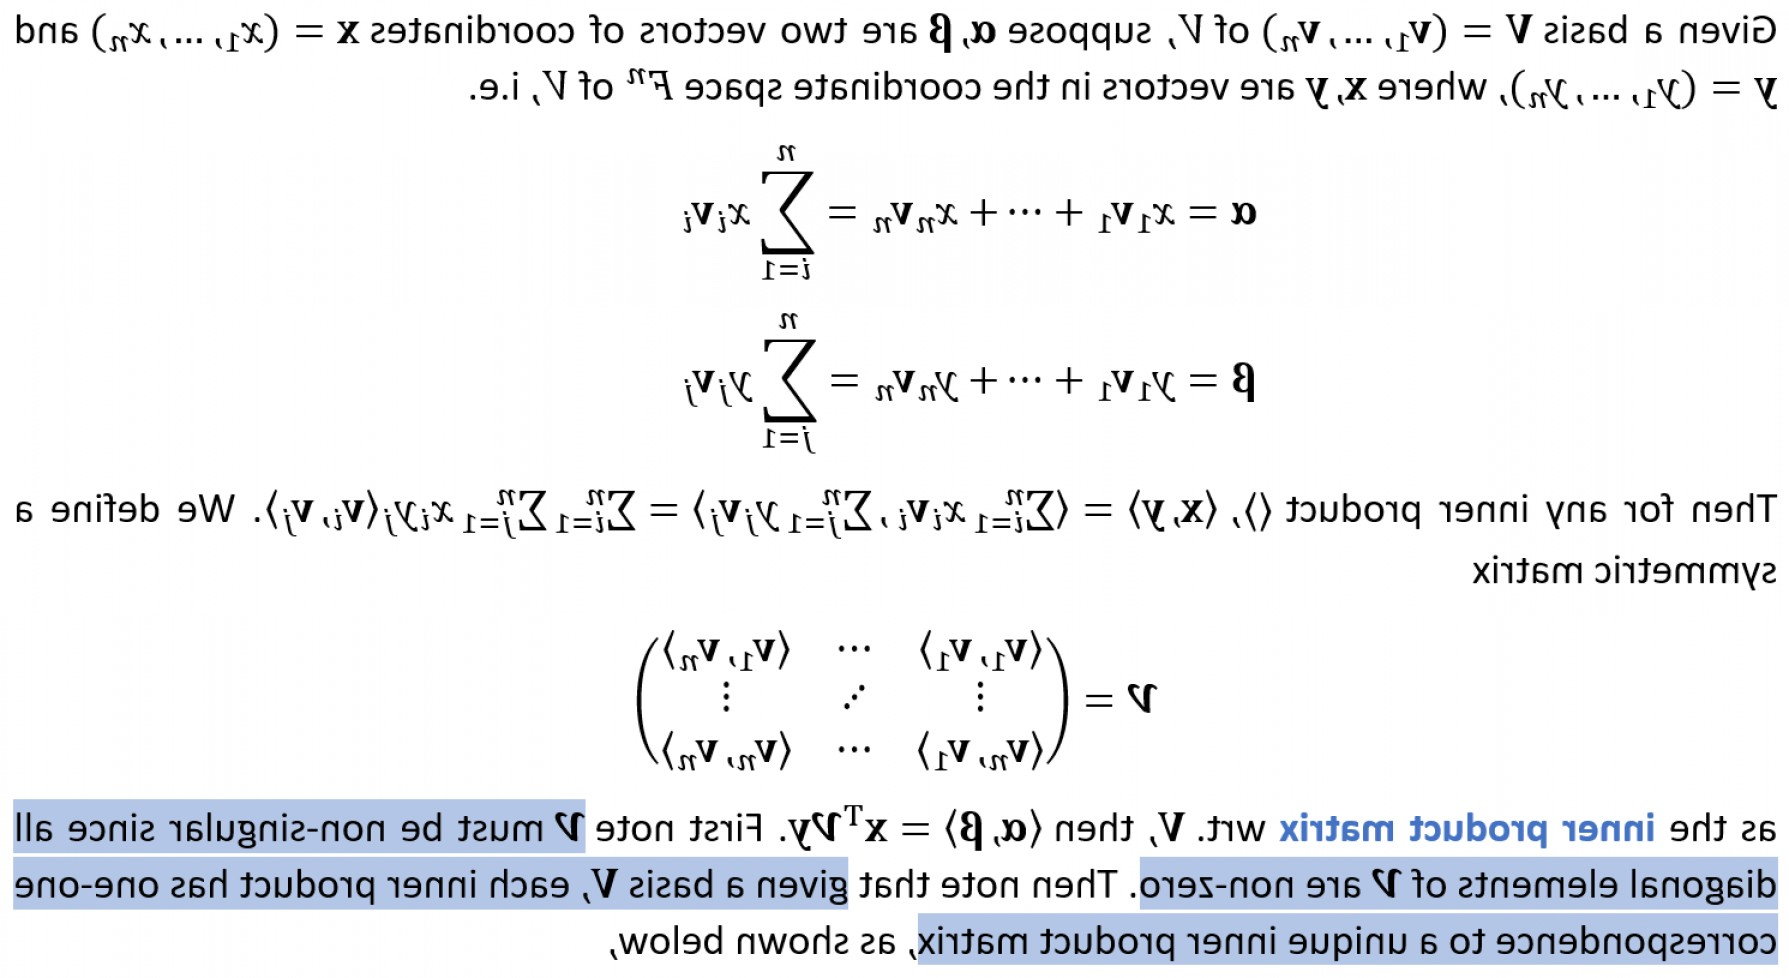 Linear Algebra Vector Zero: For Any Inner Product Can We Always Find A Symmetric Orthonormal Basis